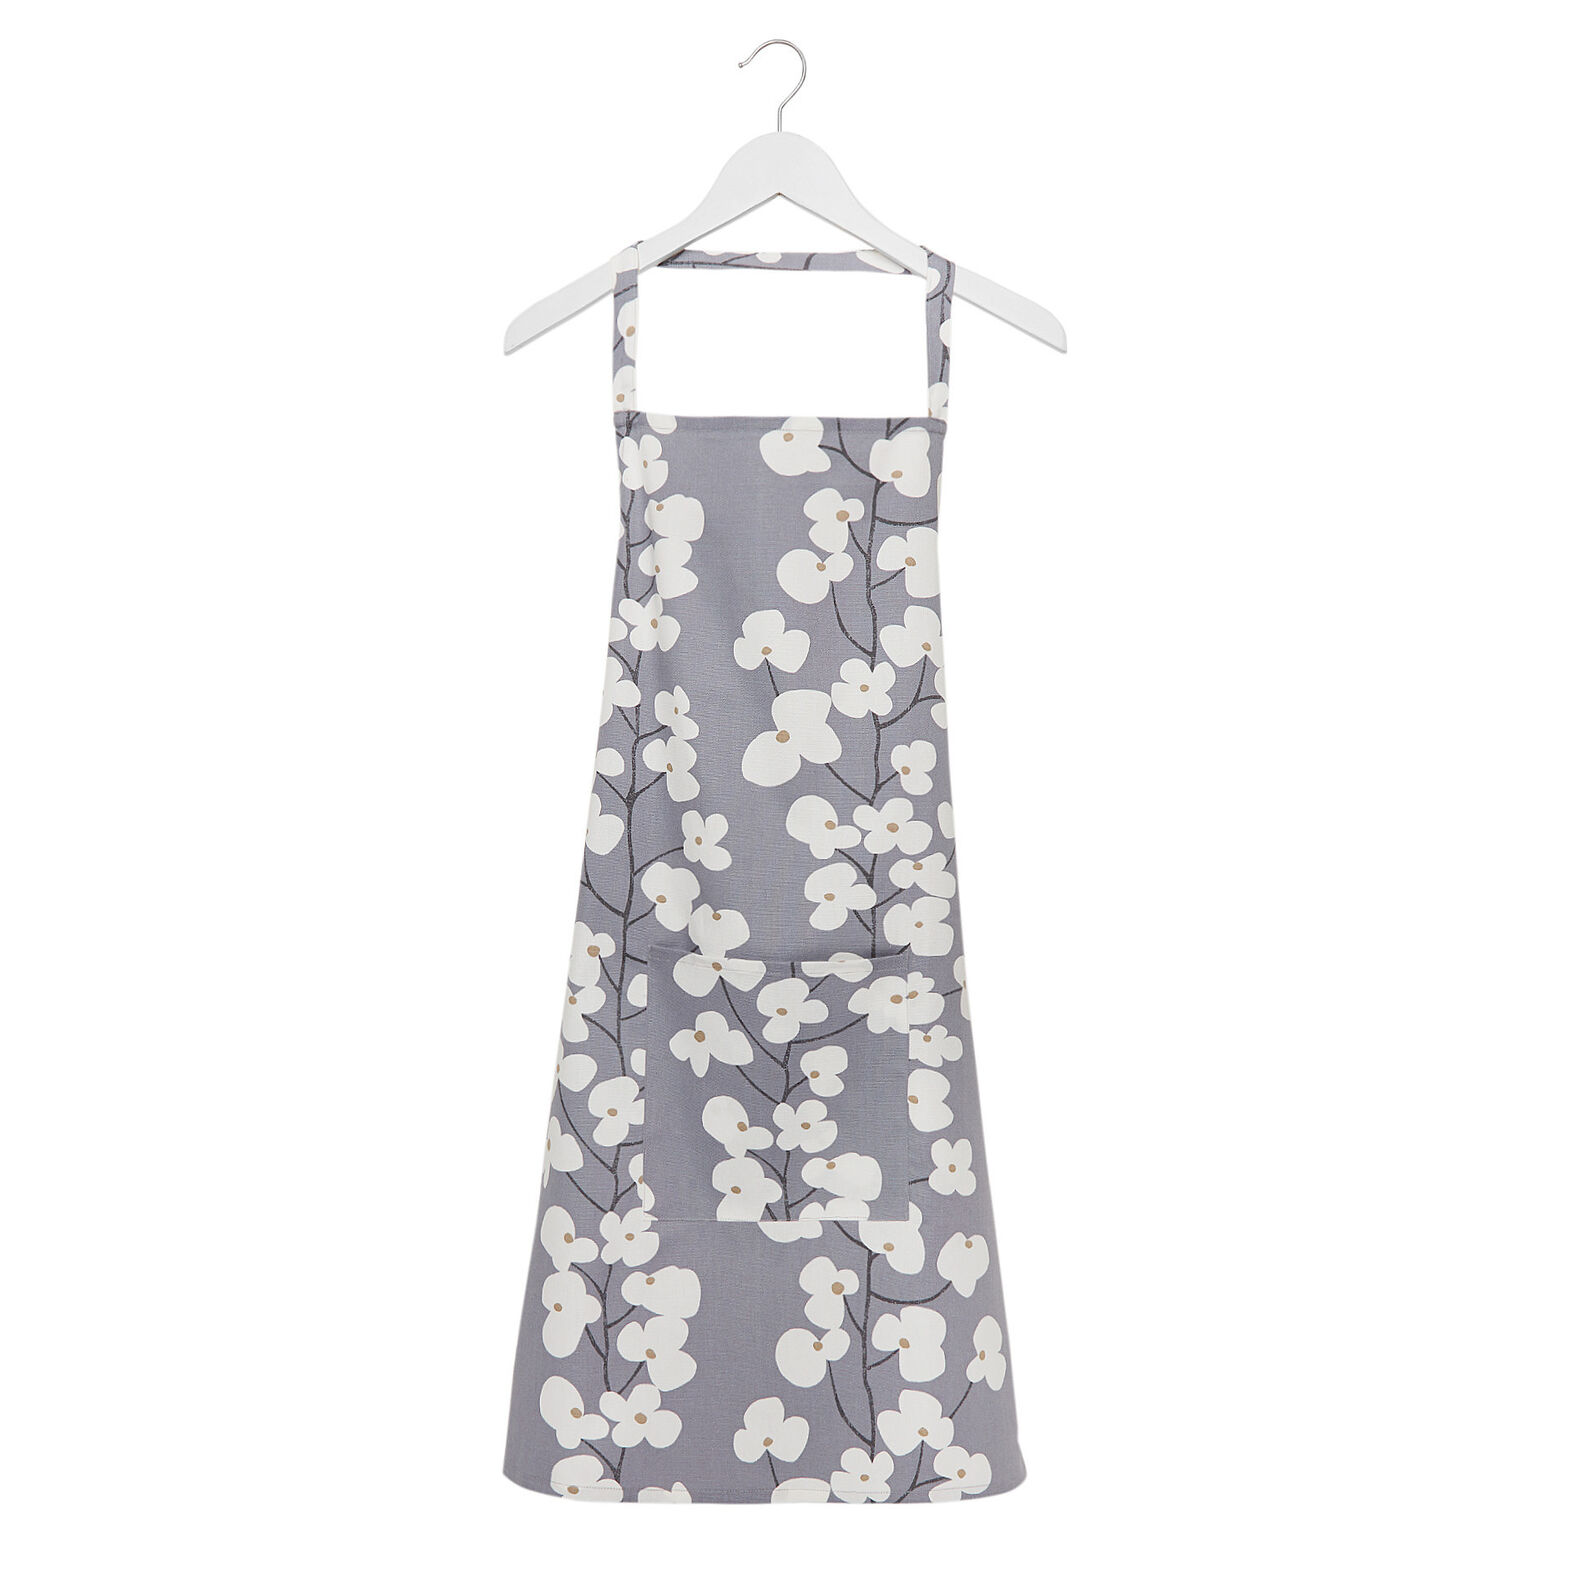 Cotton kitchen apron with flowers print